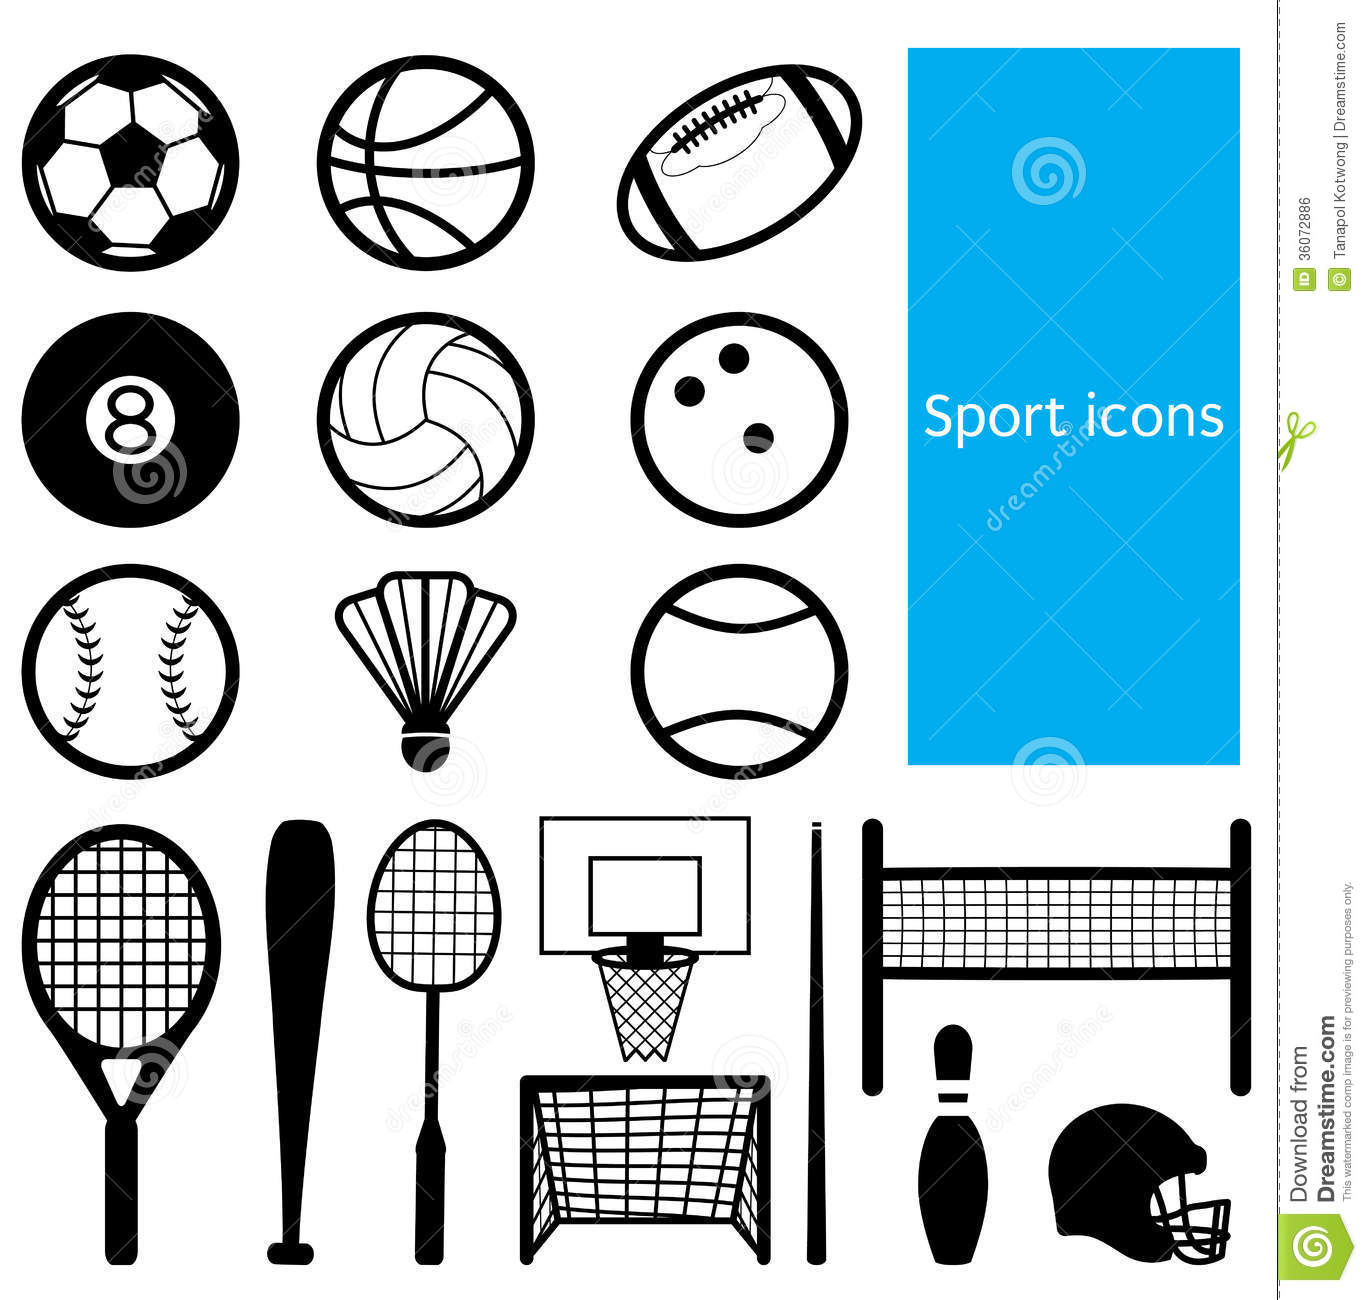 Sport Icon Royalty Free Stock Image - Image: 36072886